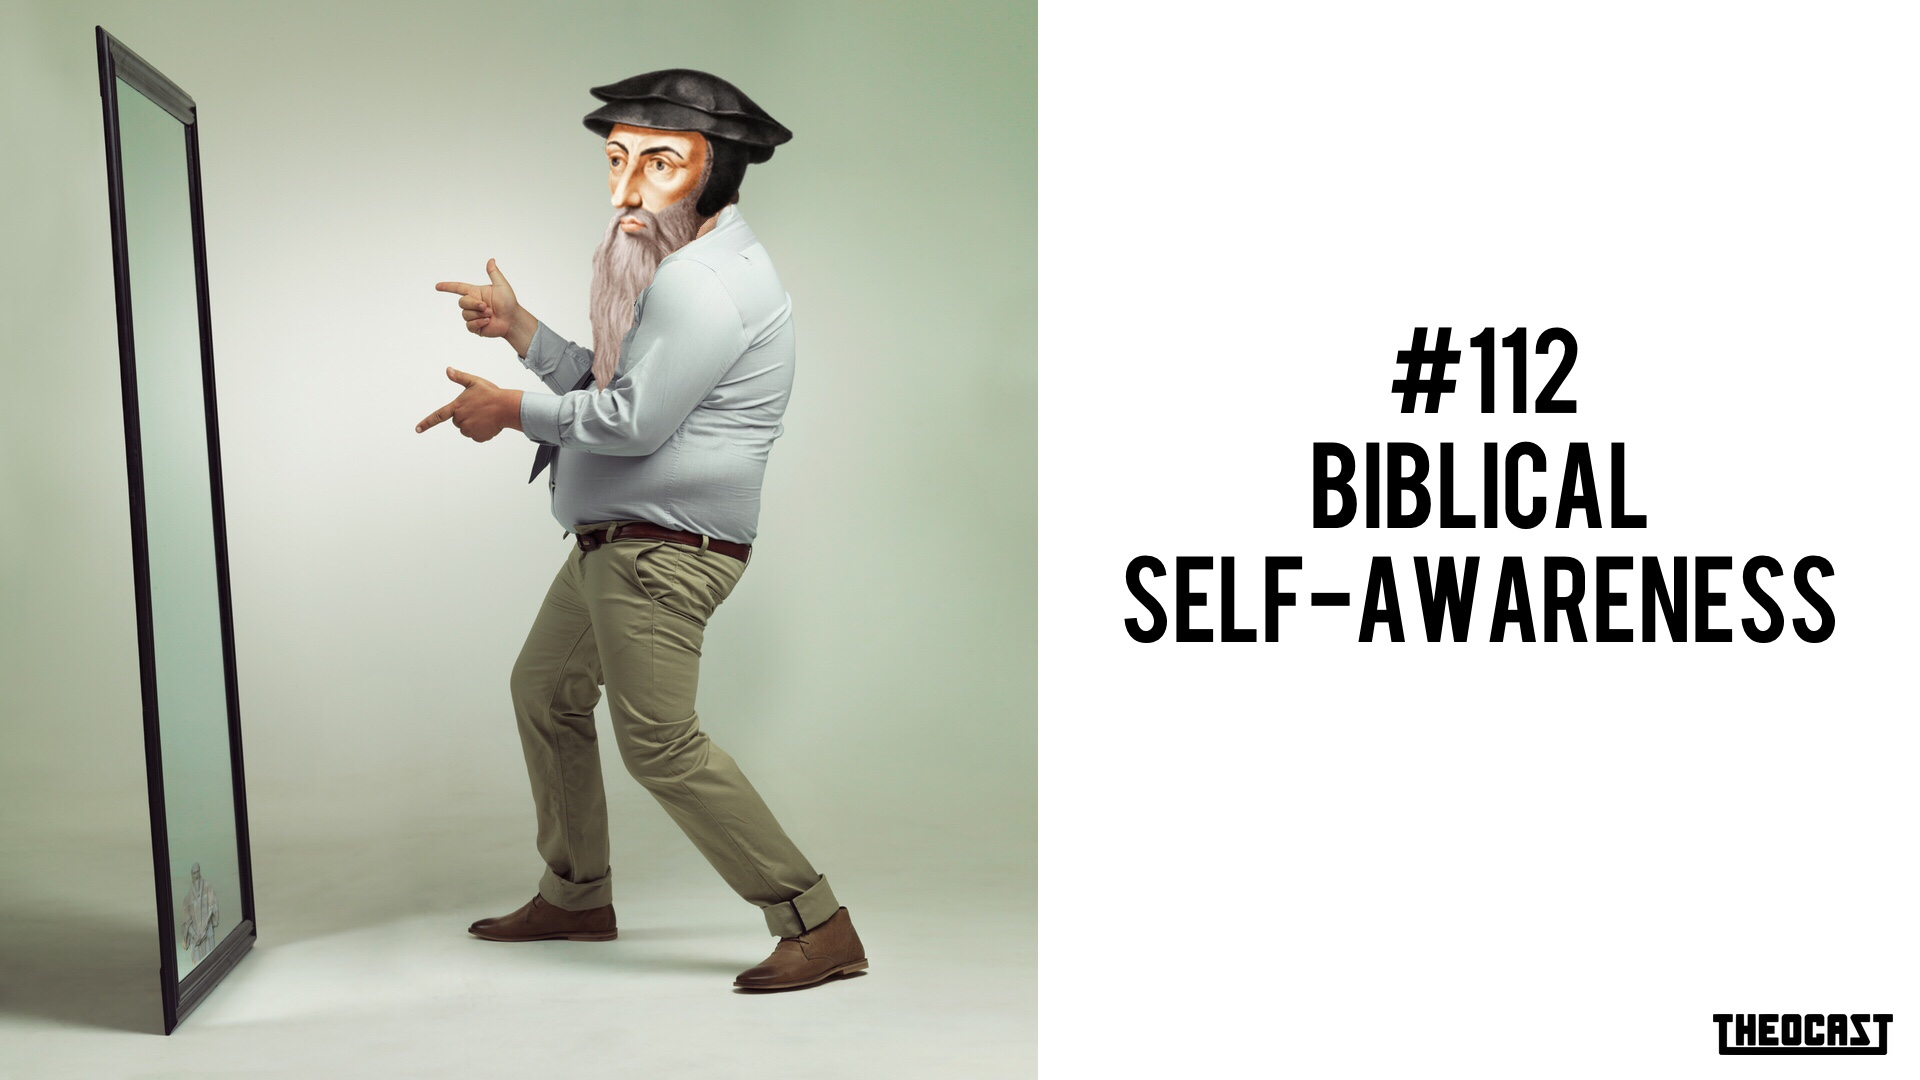 #112 Biblical Self-Awareness